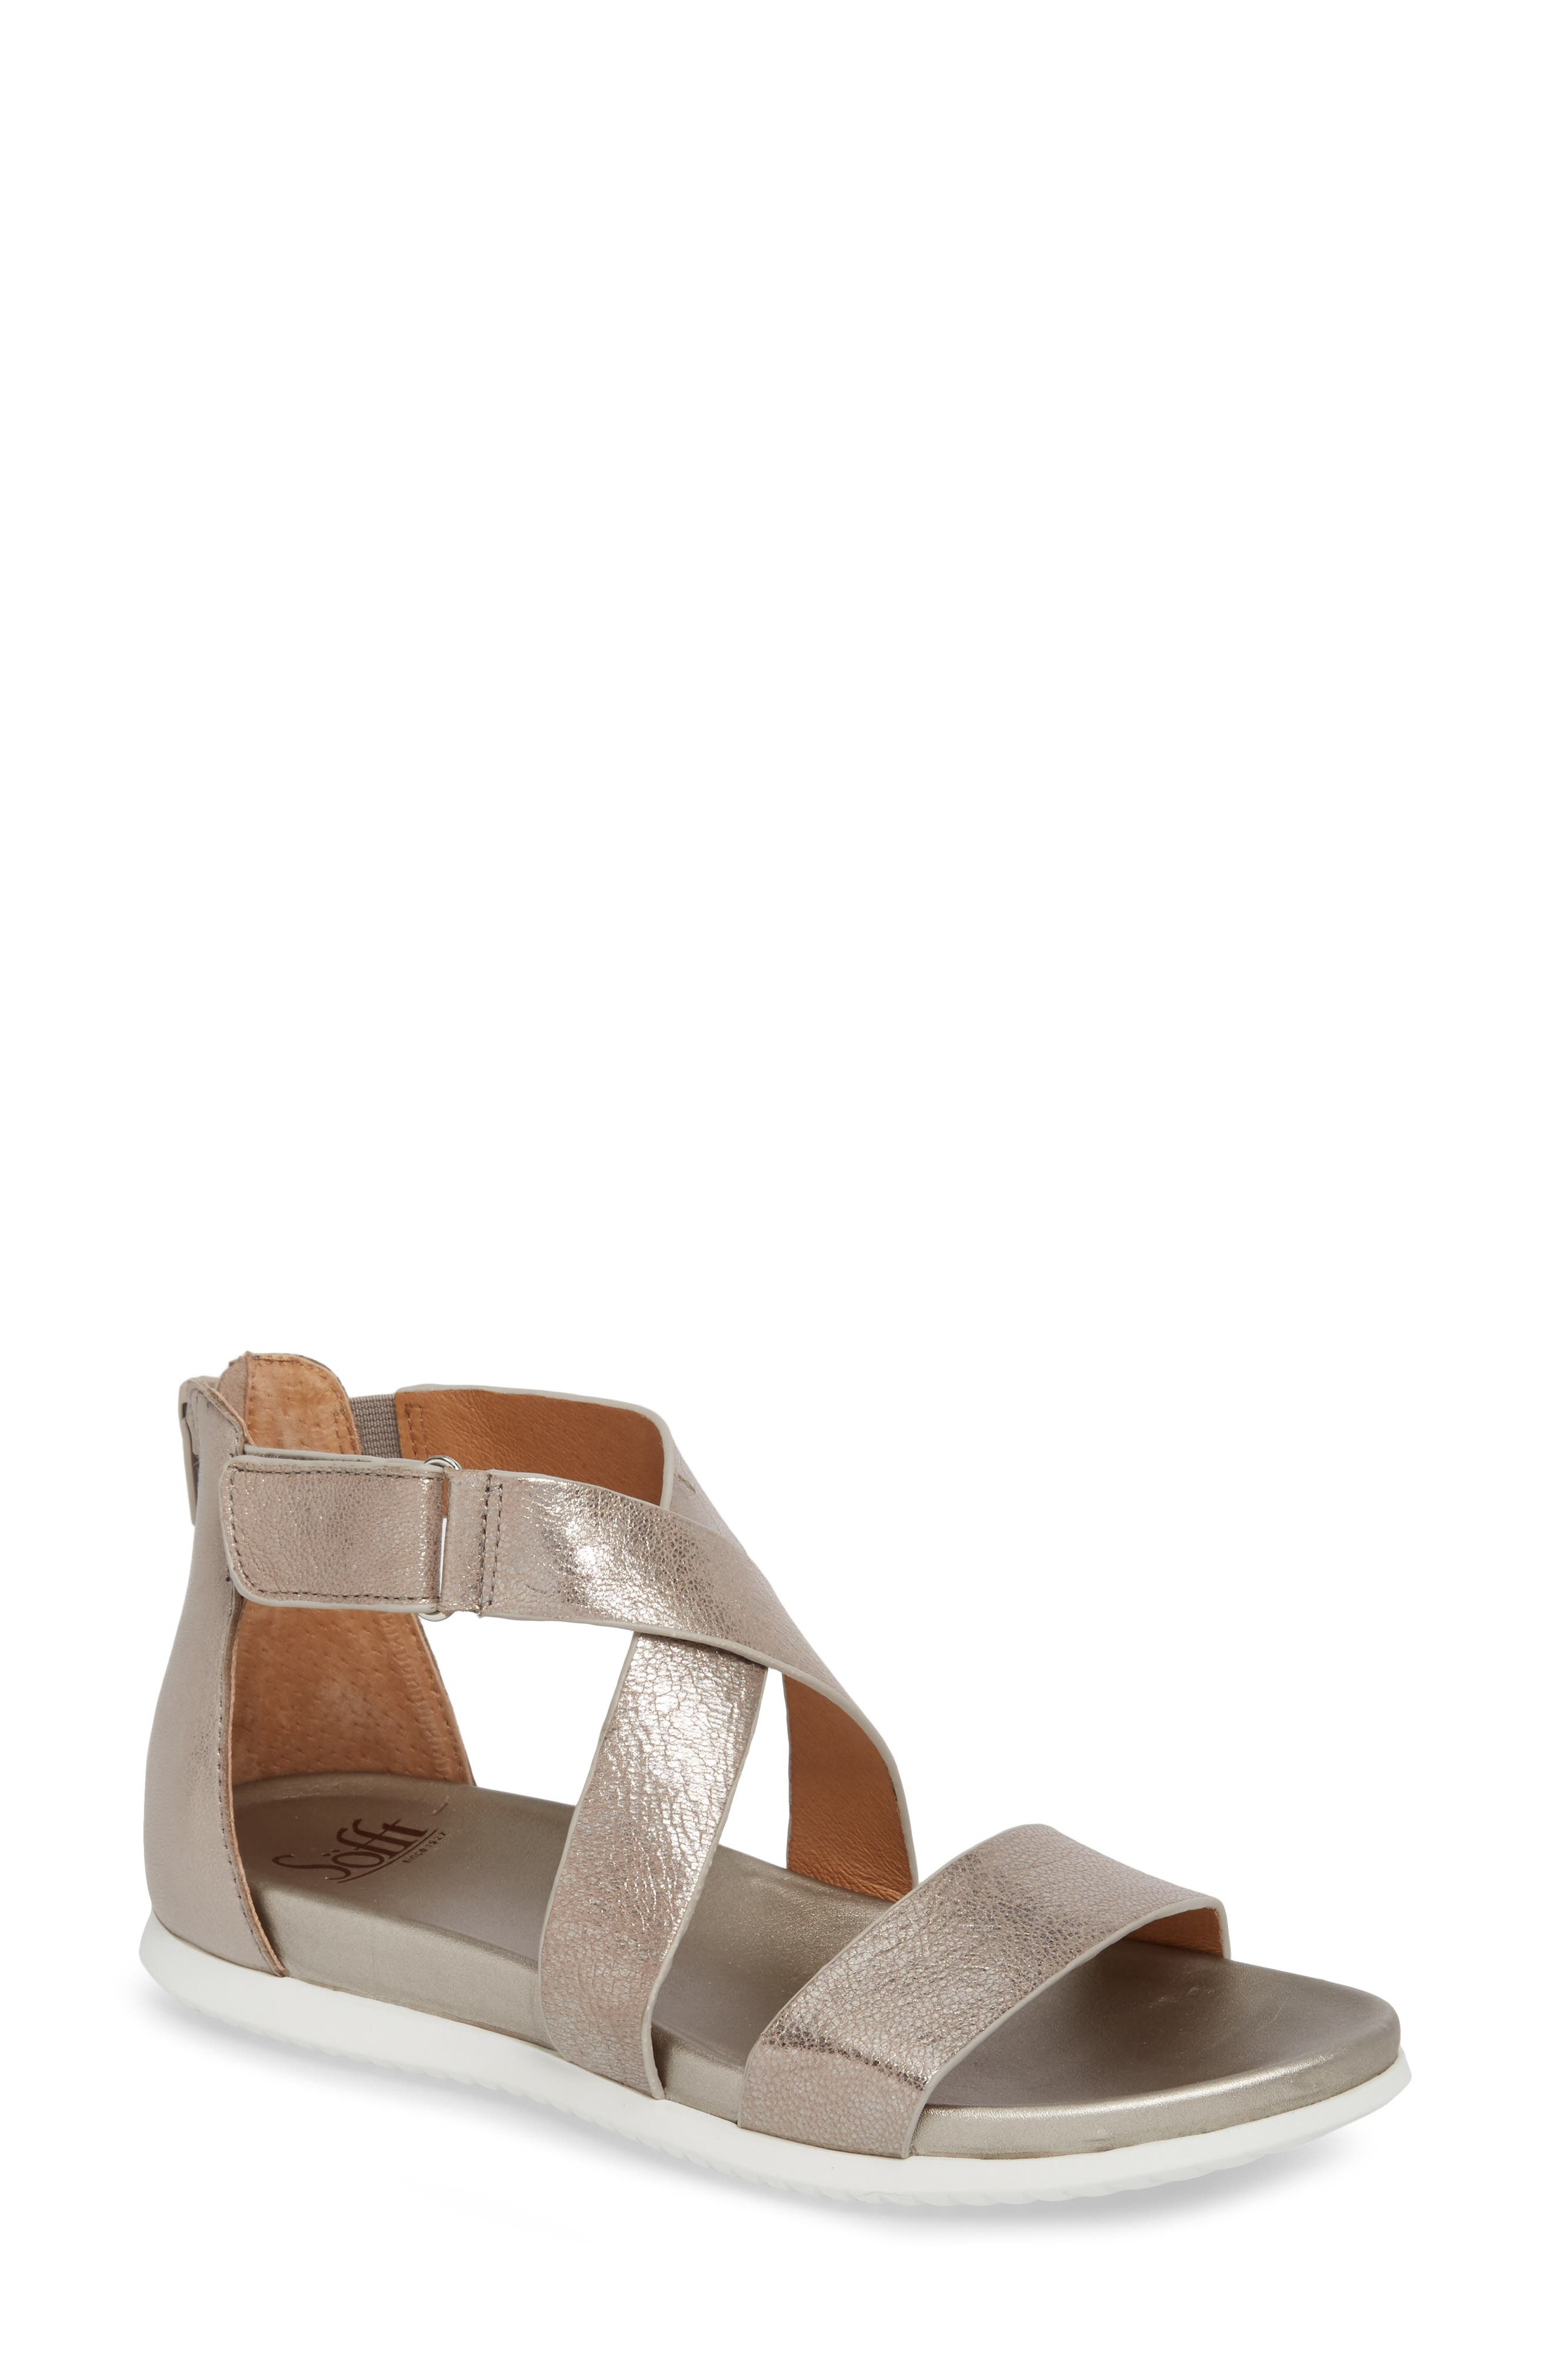 Fiora Sandal,                             Main thumbnail 1, color,                             Anthracite Leather